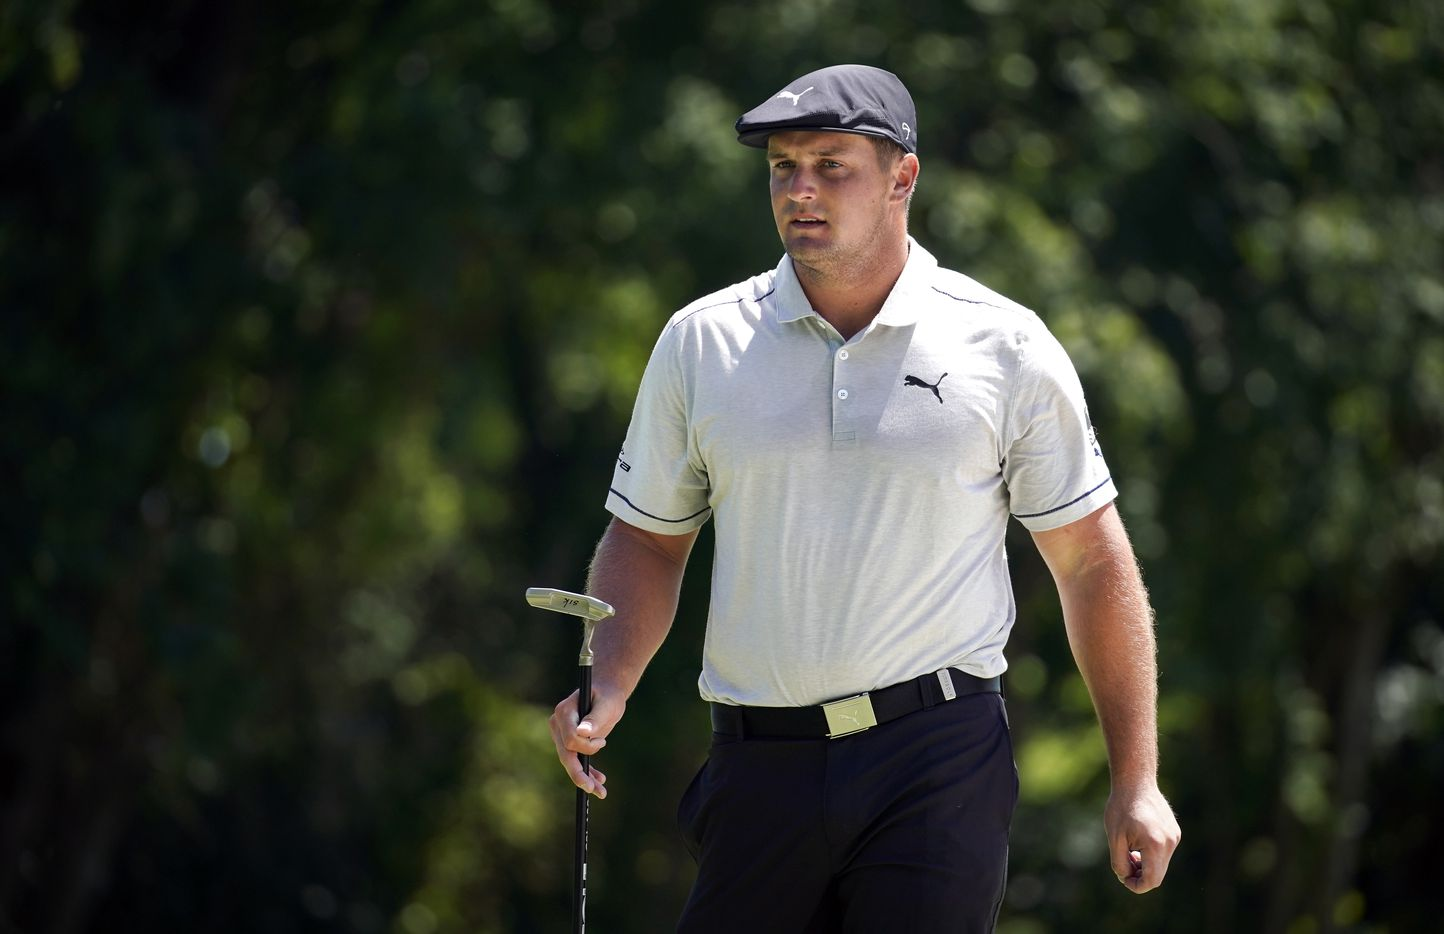 PGA Tour golfer Bryson DeChambeau finished  the third round tied for 9th with a 10-under in the Charles Schwab Challenge at the Colonial Country Club in Fort Worth, Saturday, June 13, 2020. The Challenge is the first tour event since the COVID-19 pandemic began. (Tom Fox/The Dallas Morning News)